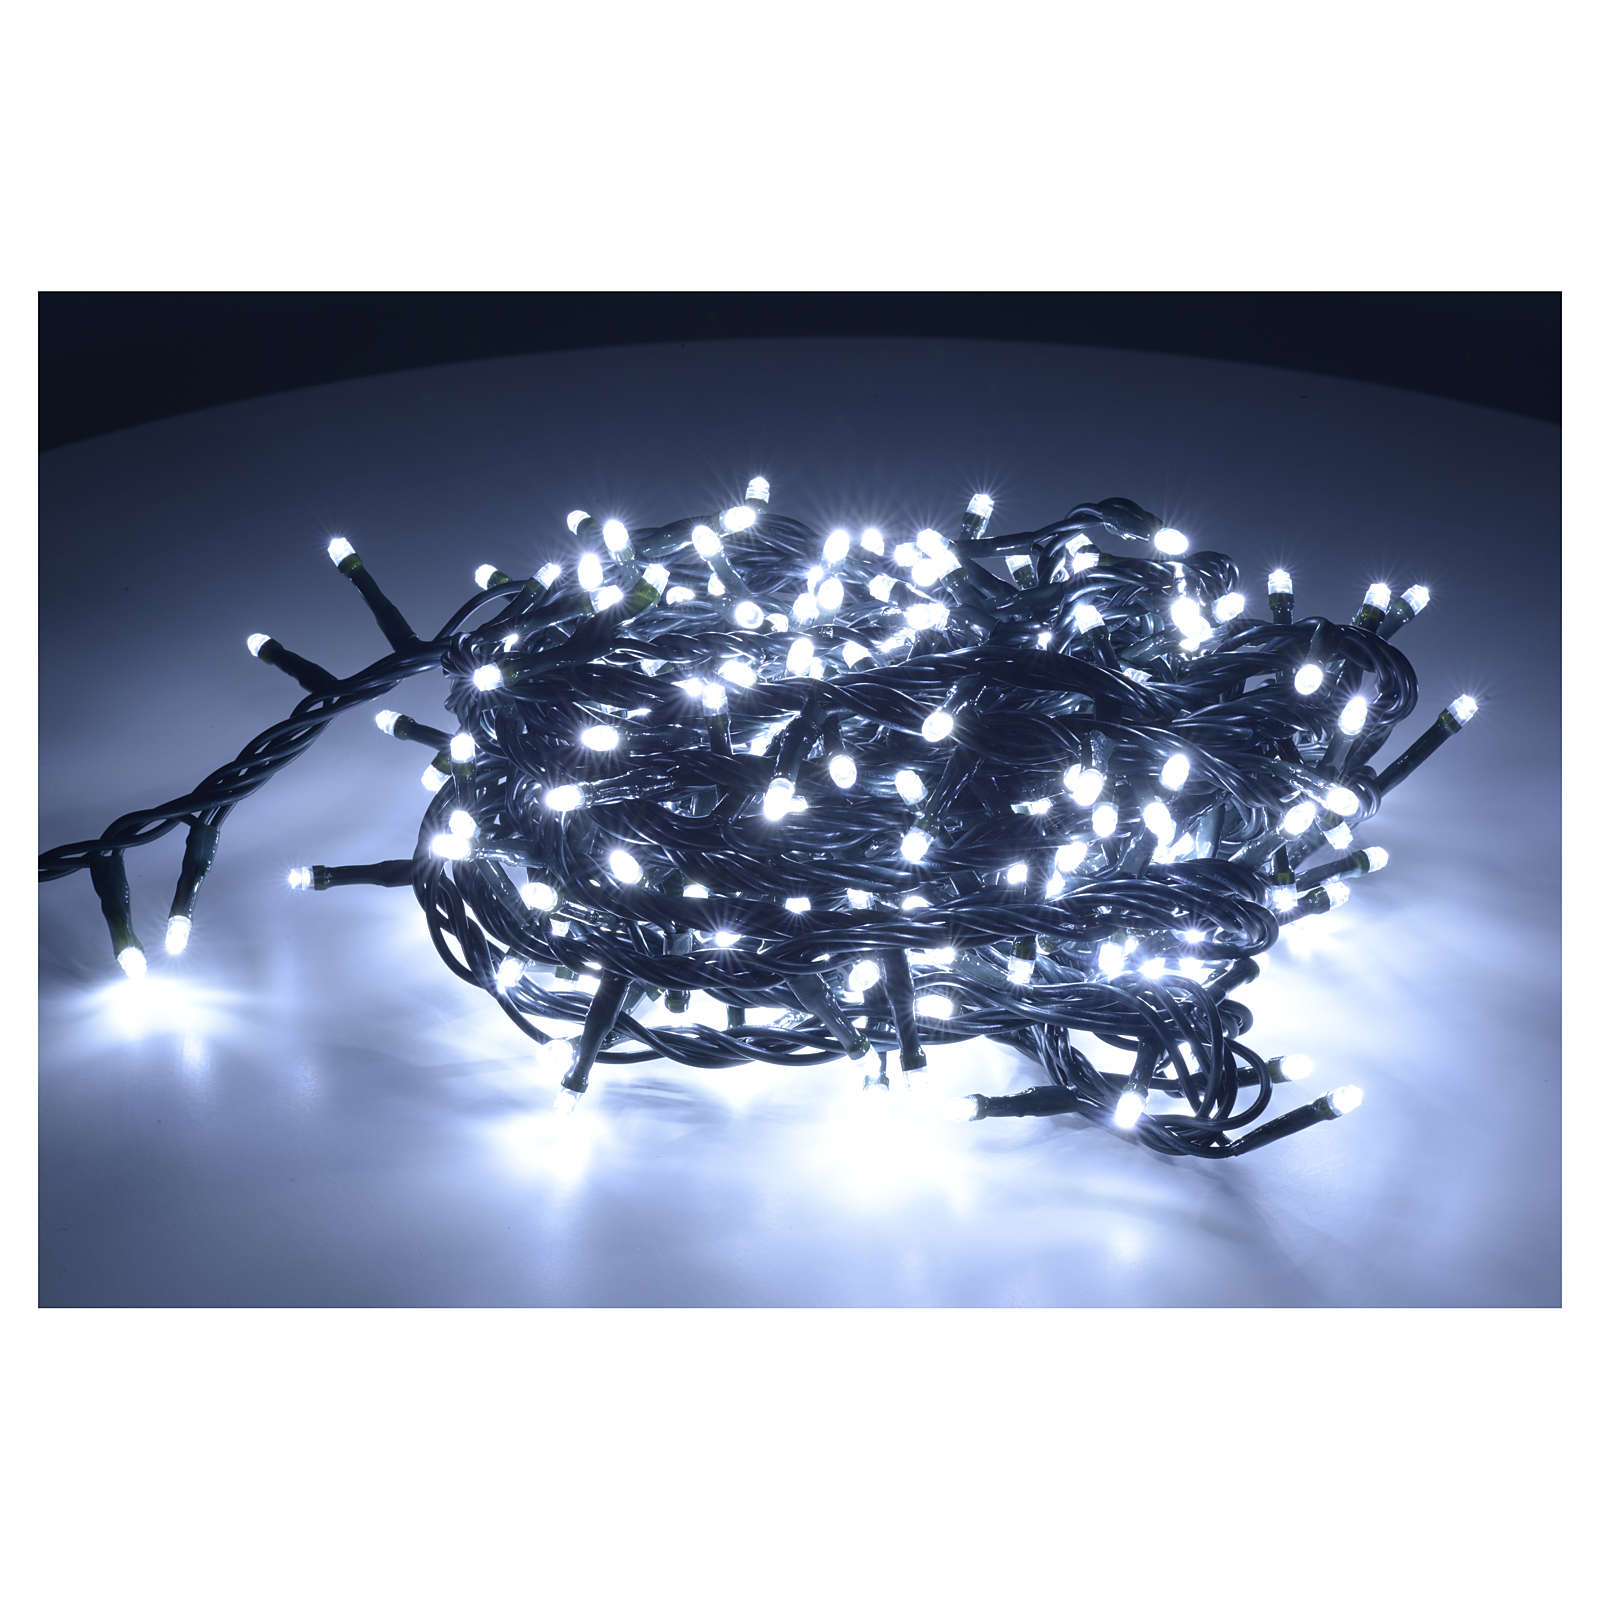 Christmas lights 300 mini lights, ice white, for indoor use 3